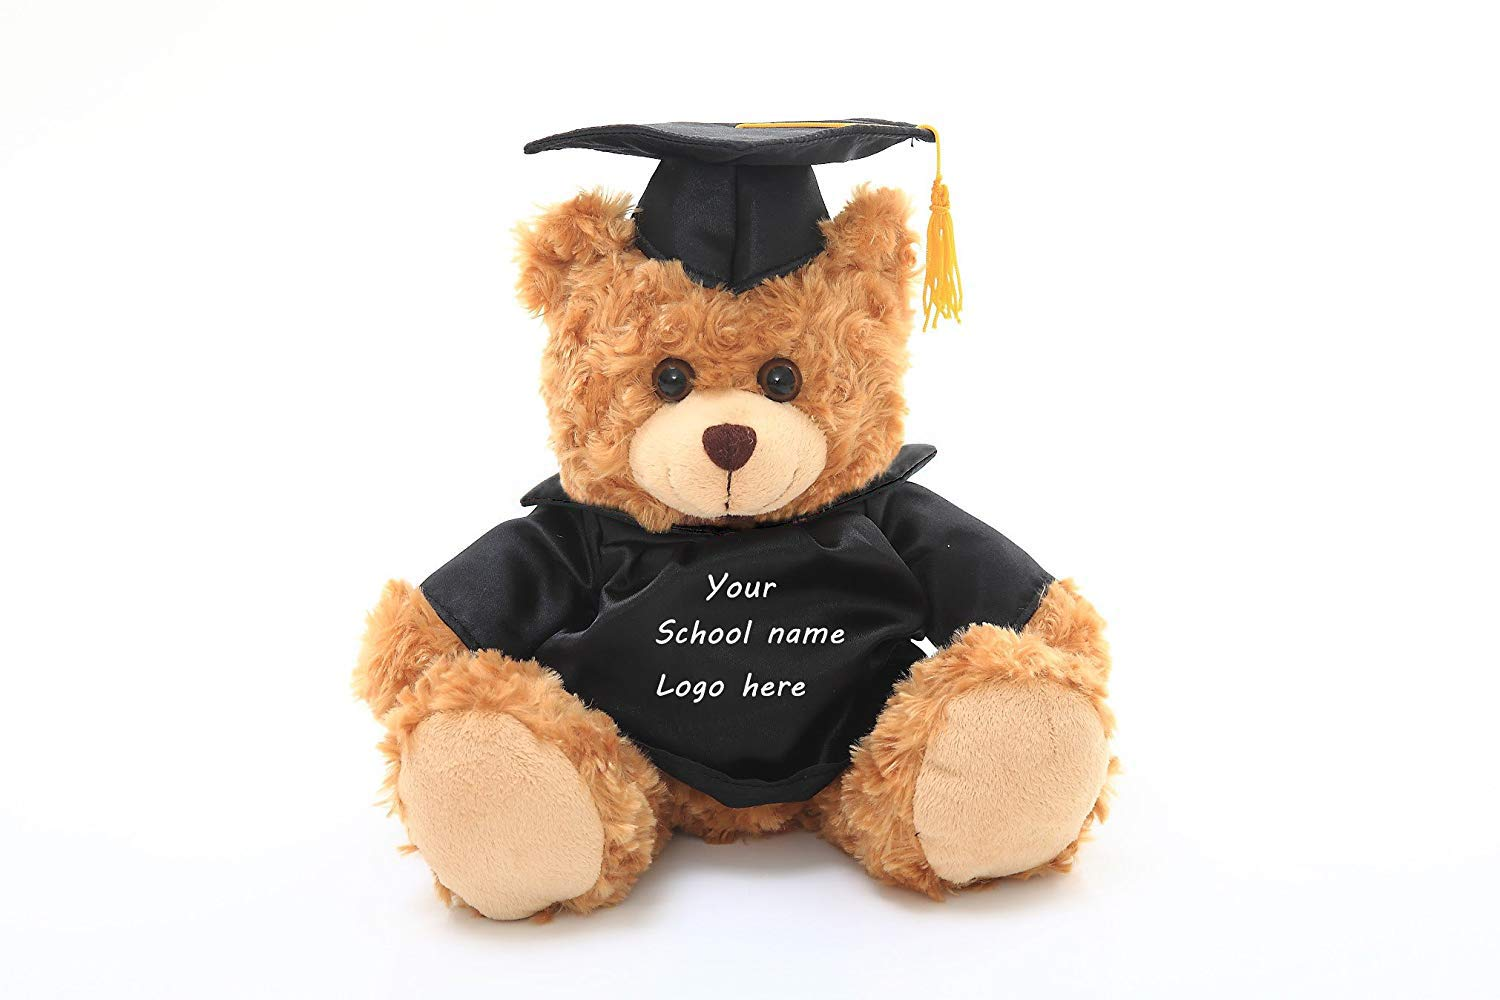 Plushland Plush Teddy Bear - Mocha Color for Graduation Day, Personalized Text, Name or Your School Logo on T-Shirt, Best for Any Grad School Kids, Boys, Girls A (6 Inches)